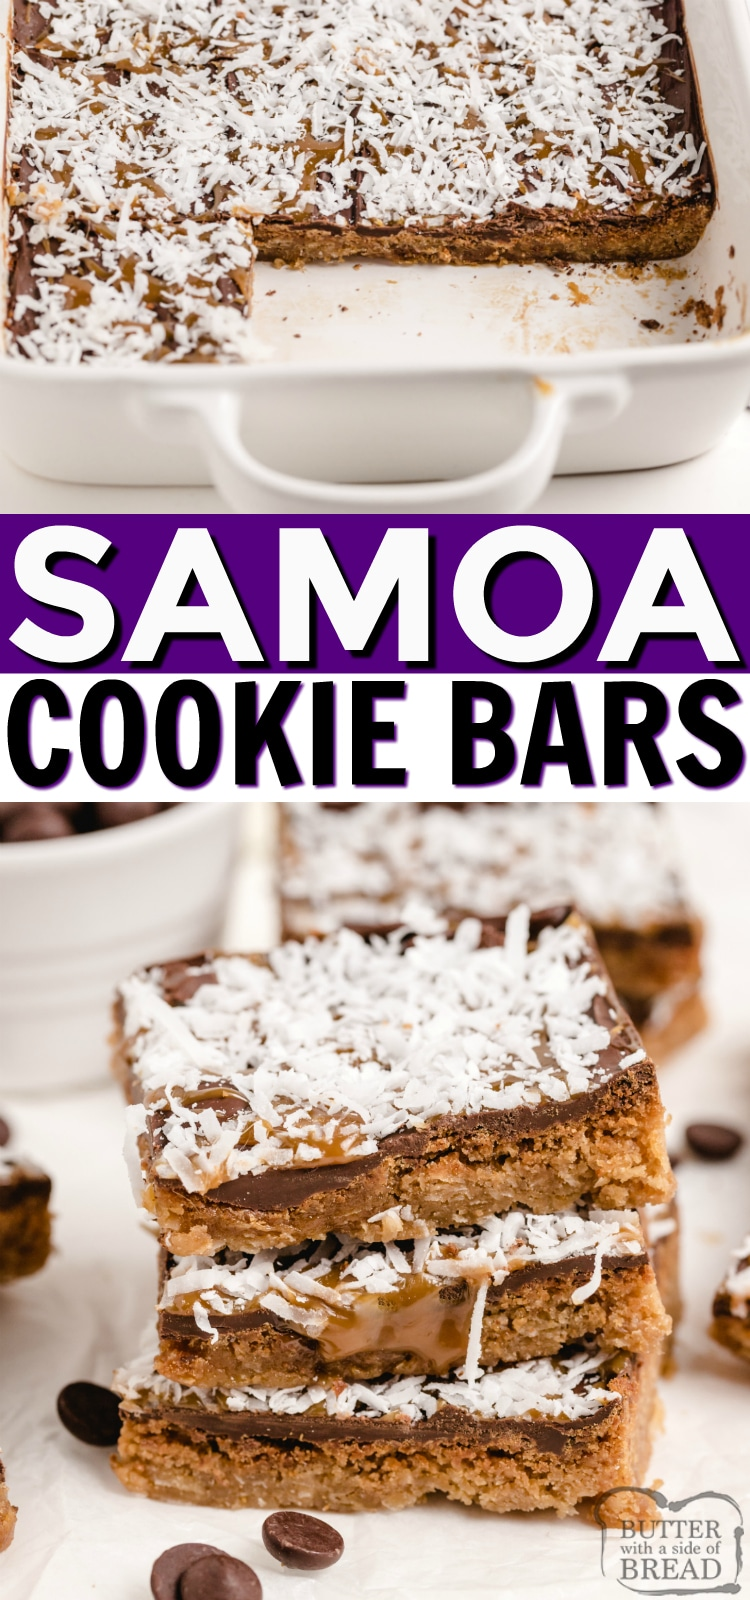 Samoa Cookie Bars made with chocolate, caramel and coconut. Moist, delicious cookie bars that have all the flavors of the famous Samoa cookies we all love!